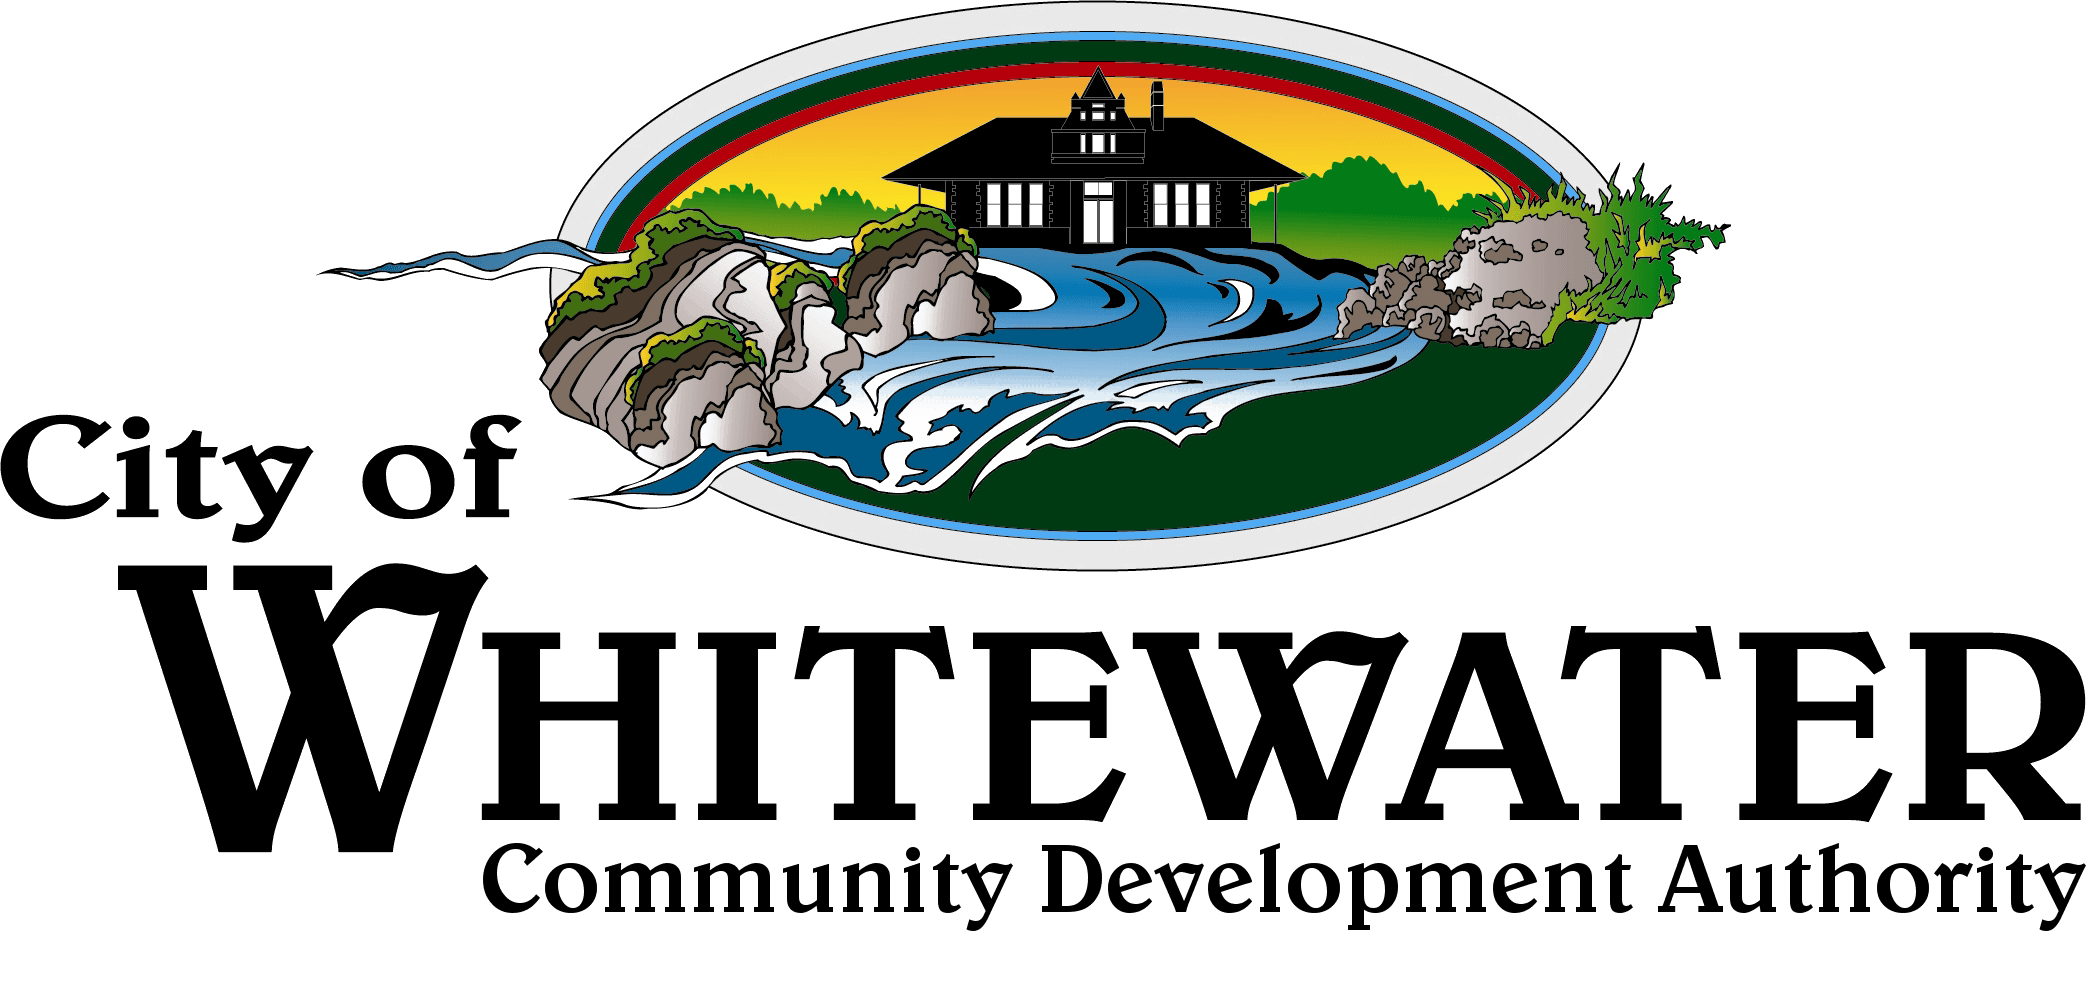 City of Whitewater Transparent Community Development Authority